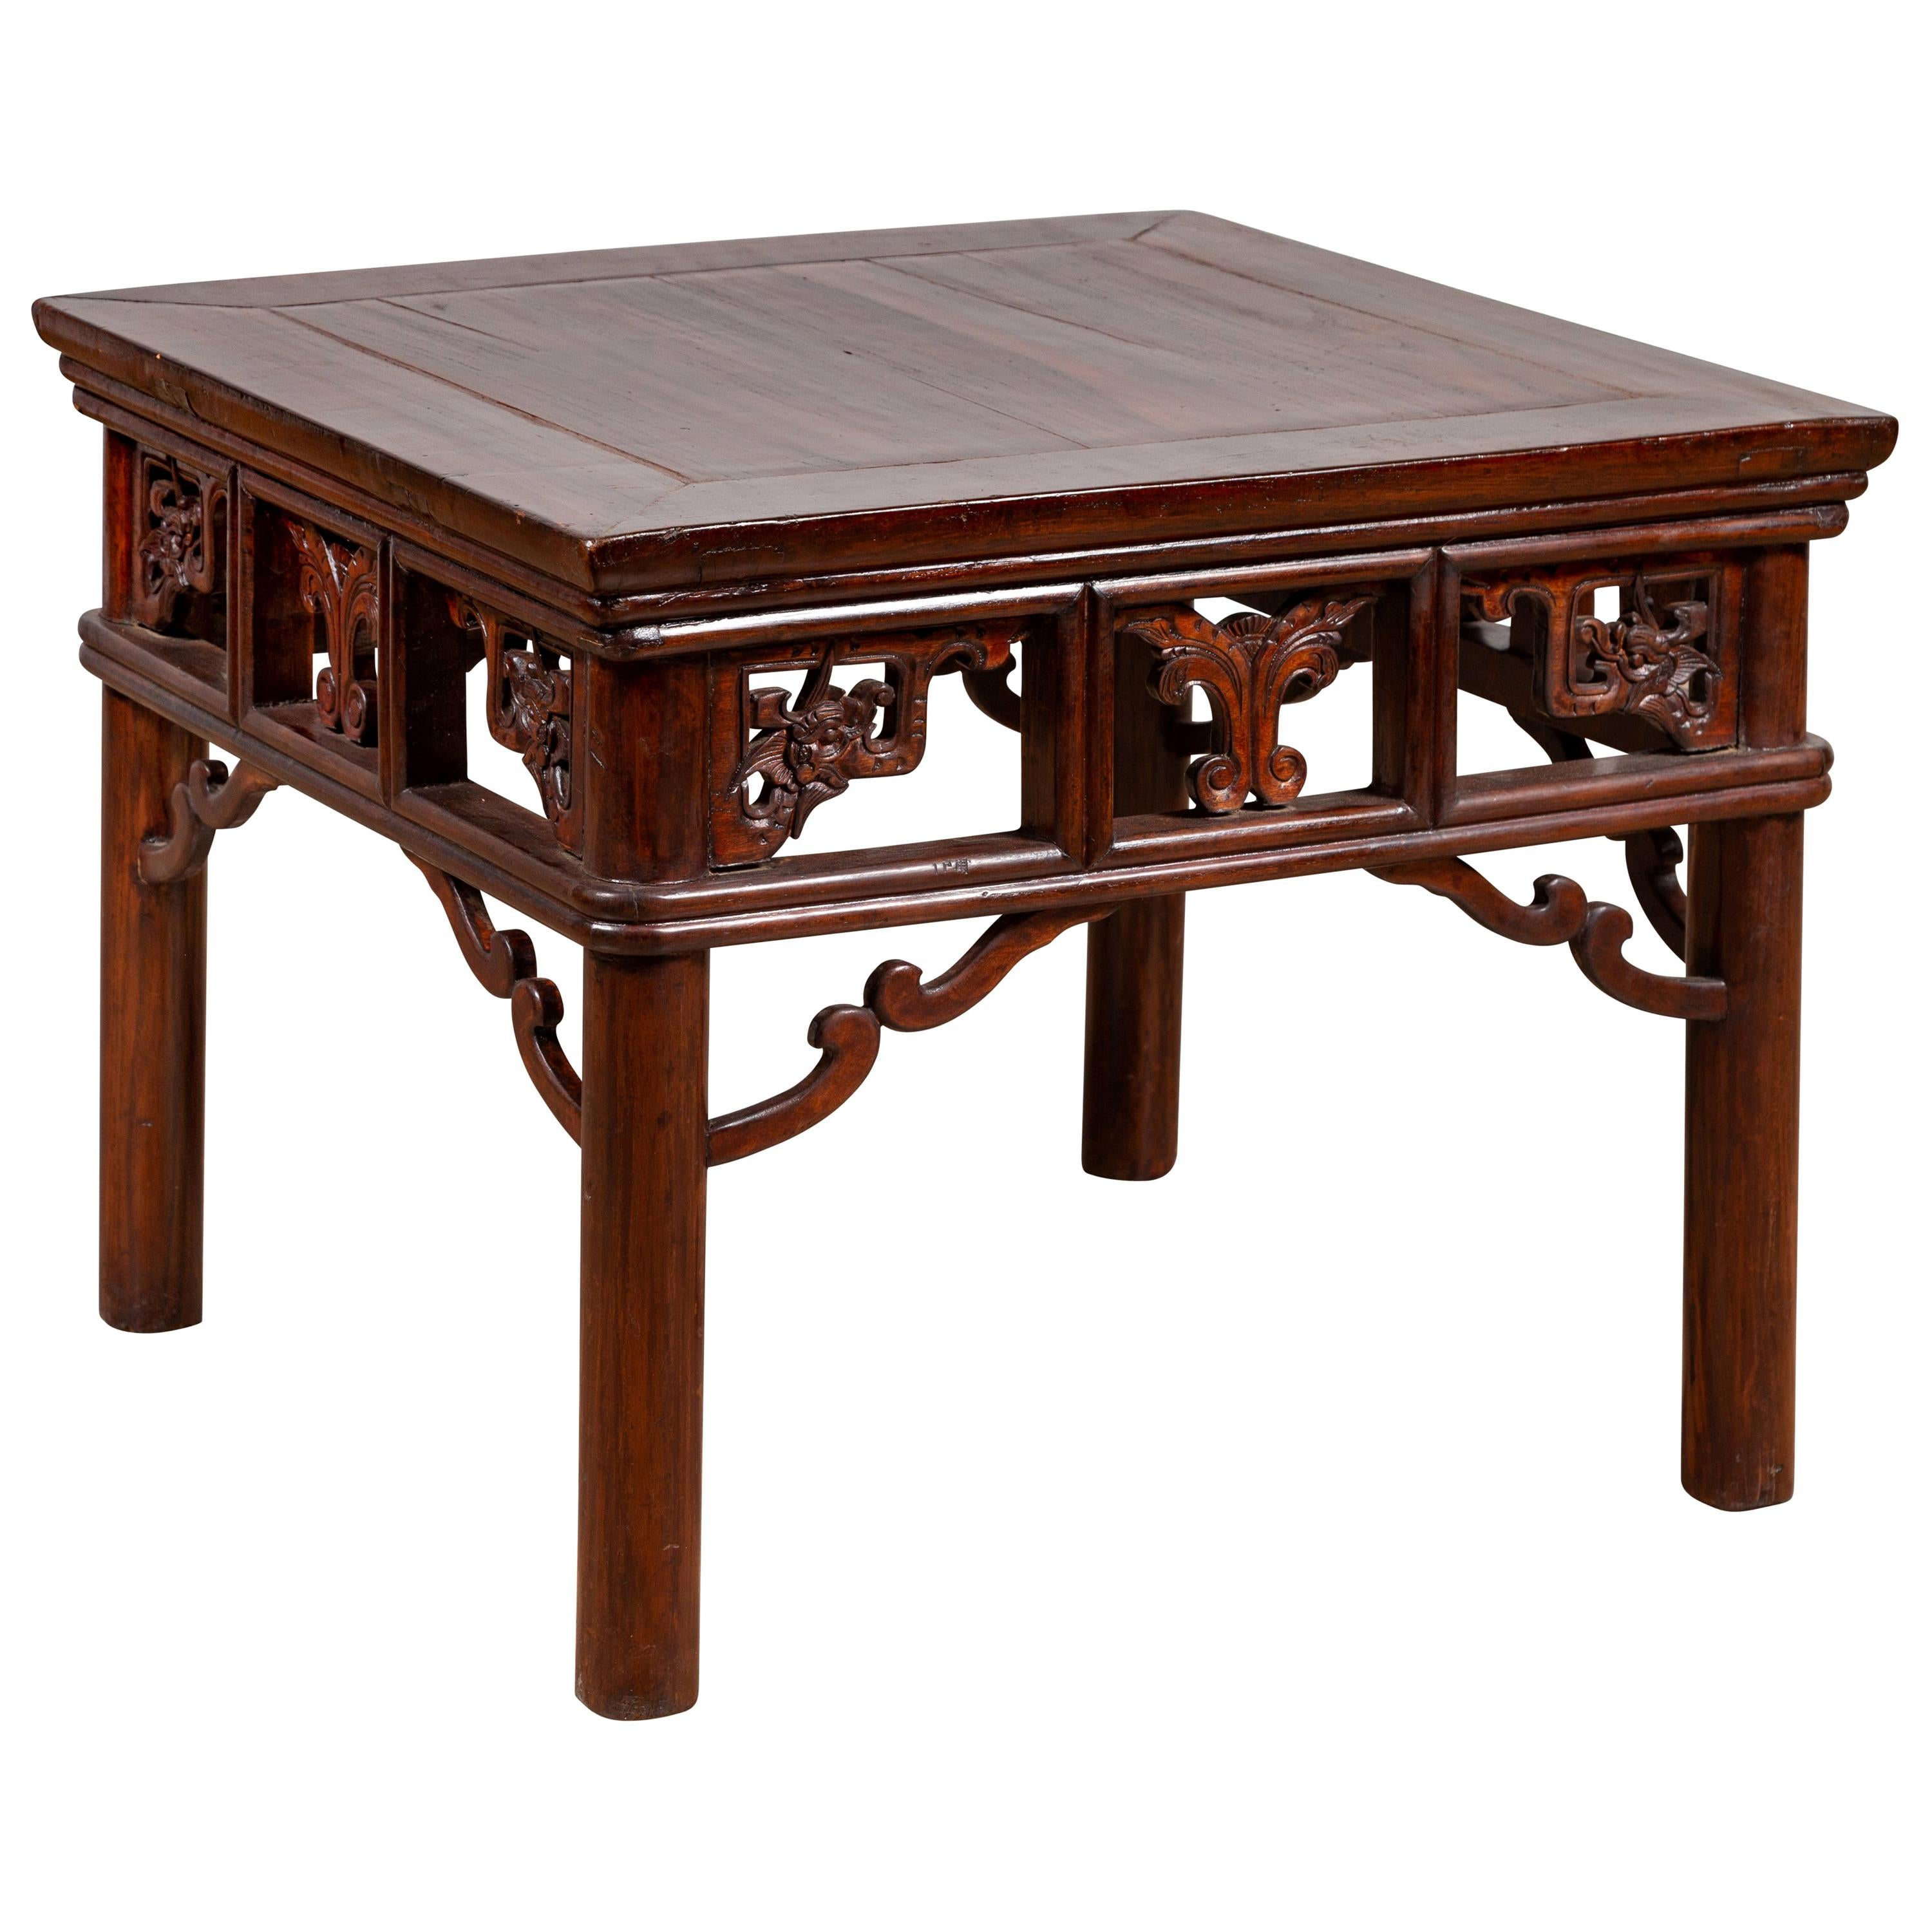 Dark Wood Furniture Chinese Antique Side Table With Open Fretwork Design And Dark Wood Patina